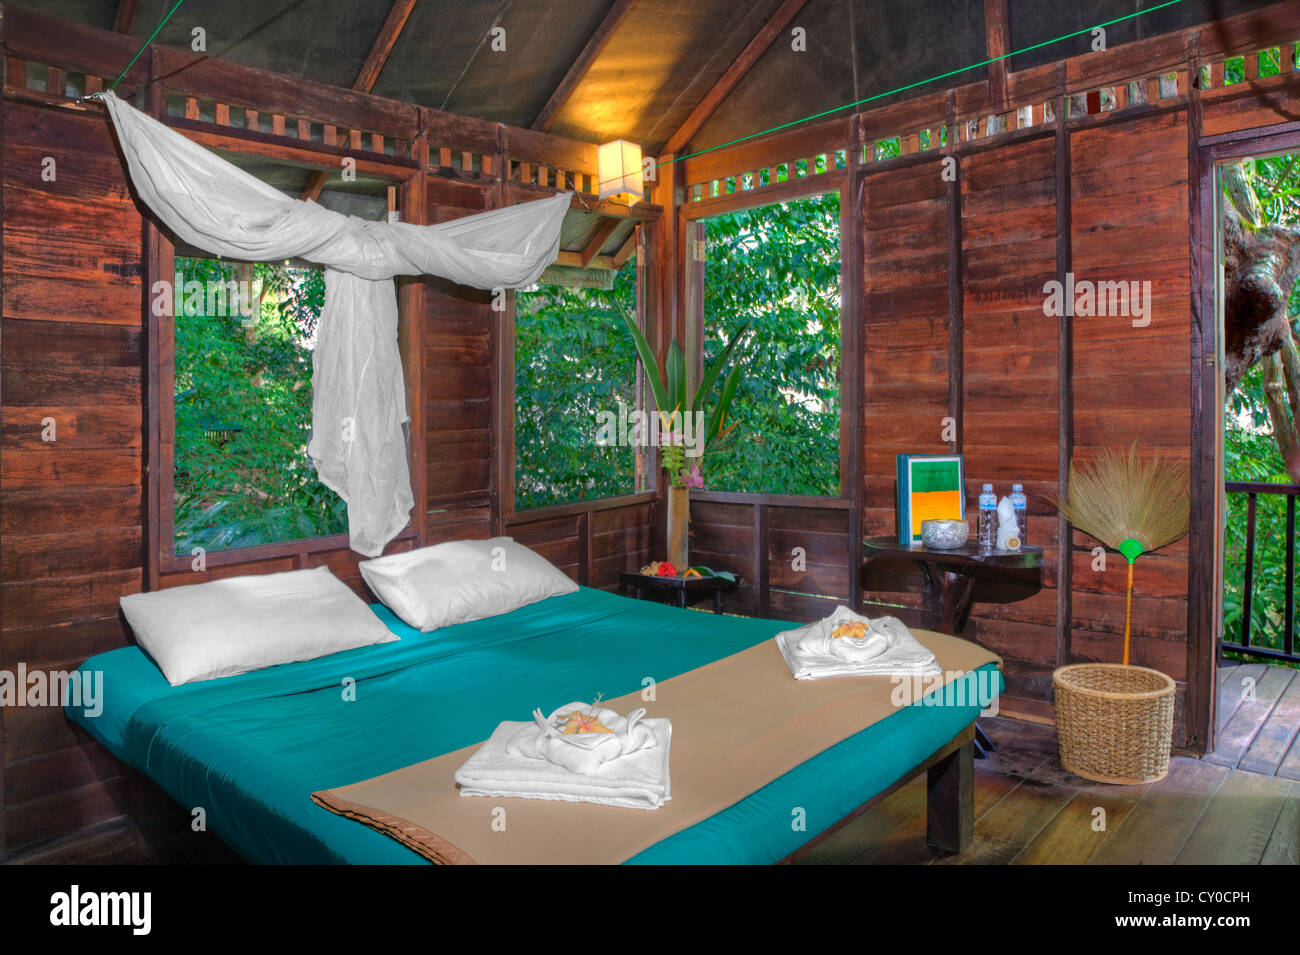 a tree house interior at our jungle house a lodge in the rainforest near khao sok